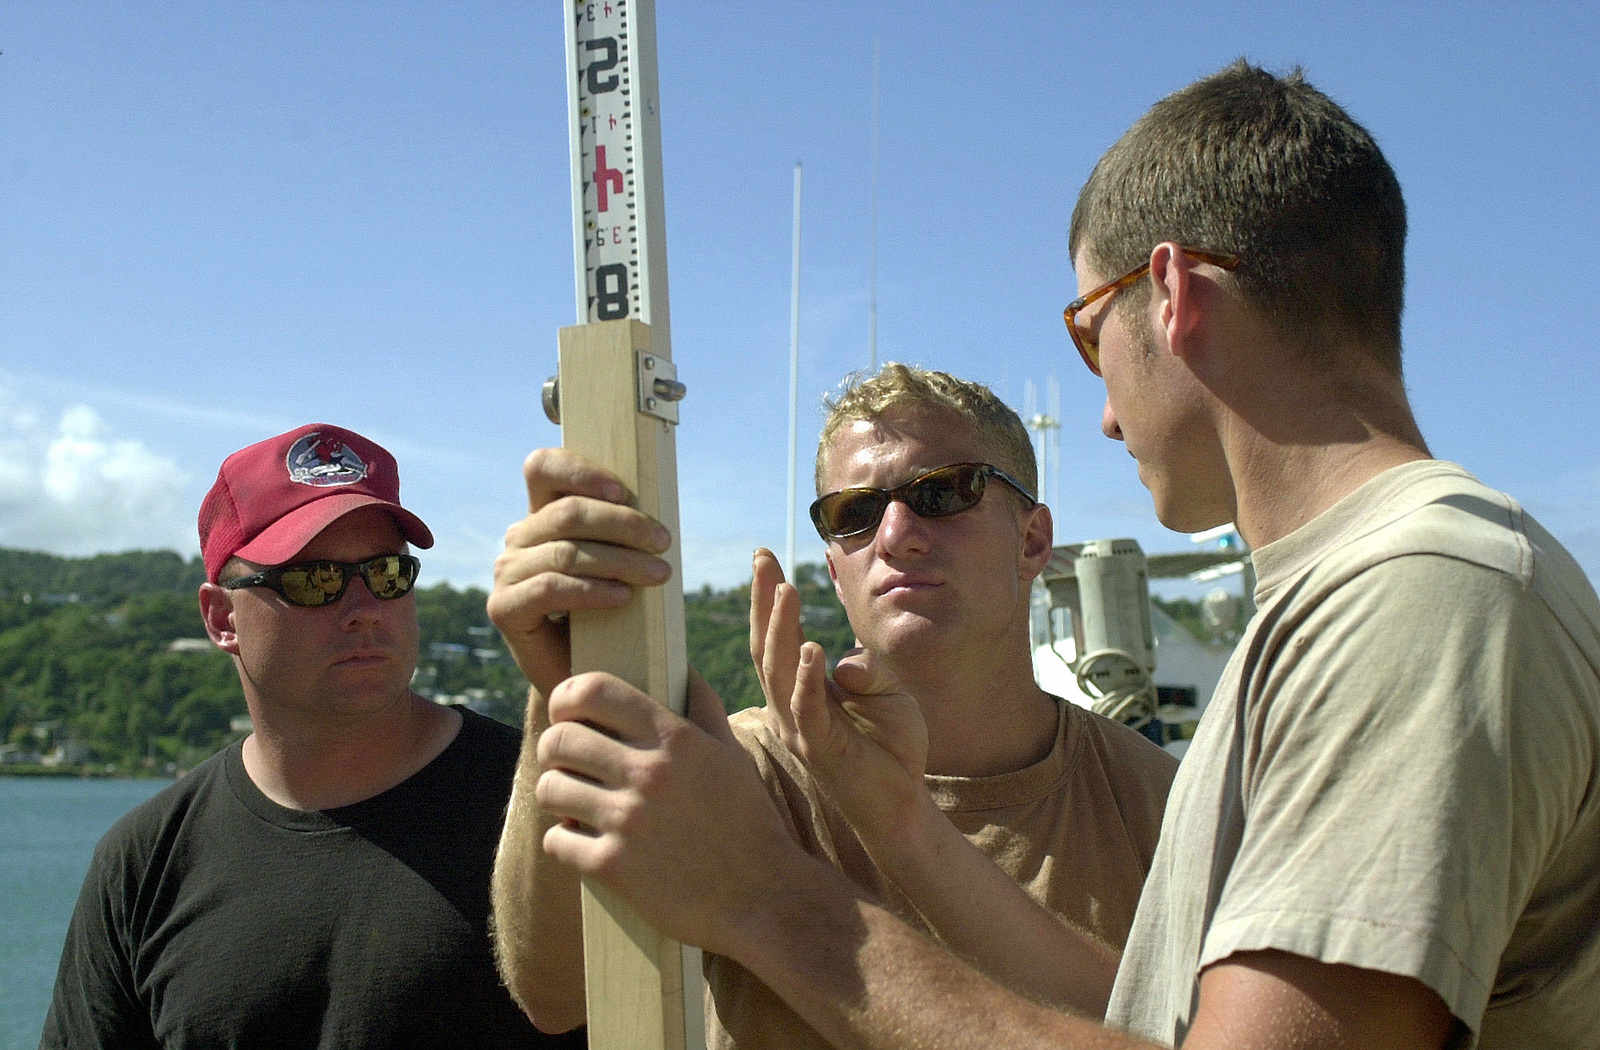 Members of the 820th Red Horse Squadron, Nellis Air Force Base, Nevada, discuss measurements during the construction of new Marine barracks being built during Operation NEW HORIZONS in Castries, Saint Lucia. Approximately 100 Marine, Army and Air Force personnel have deployed to Saint Lucia as part of New Horizons. The exercise has a two fold mission of readiness and humanitarian assistance in the Caribbean and Latin America